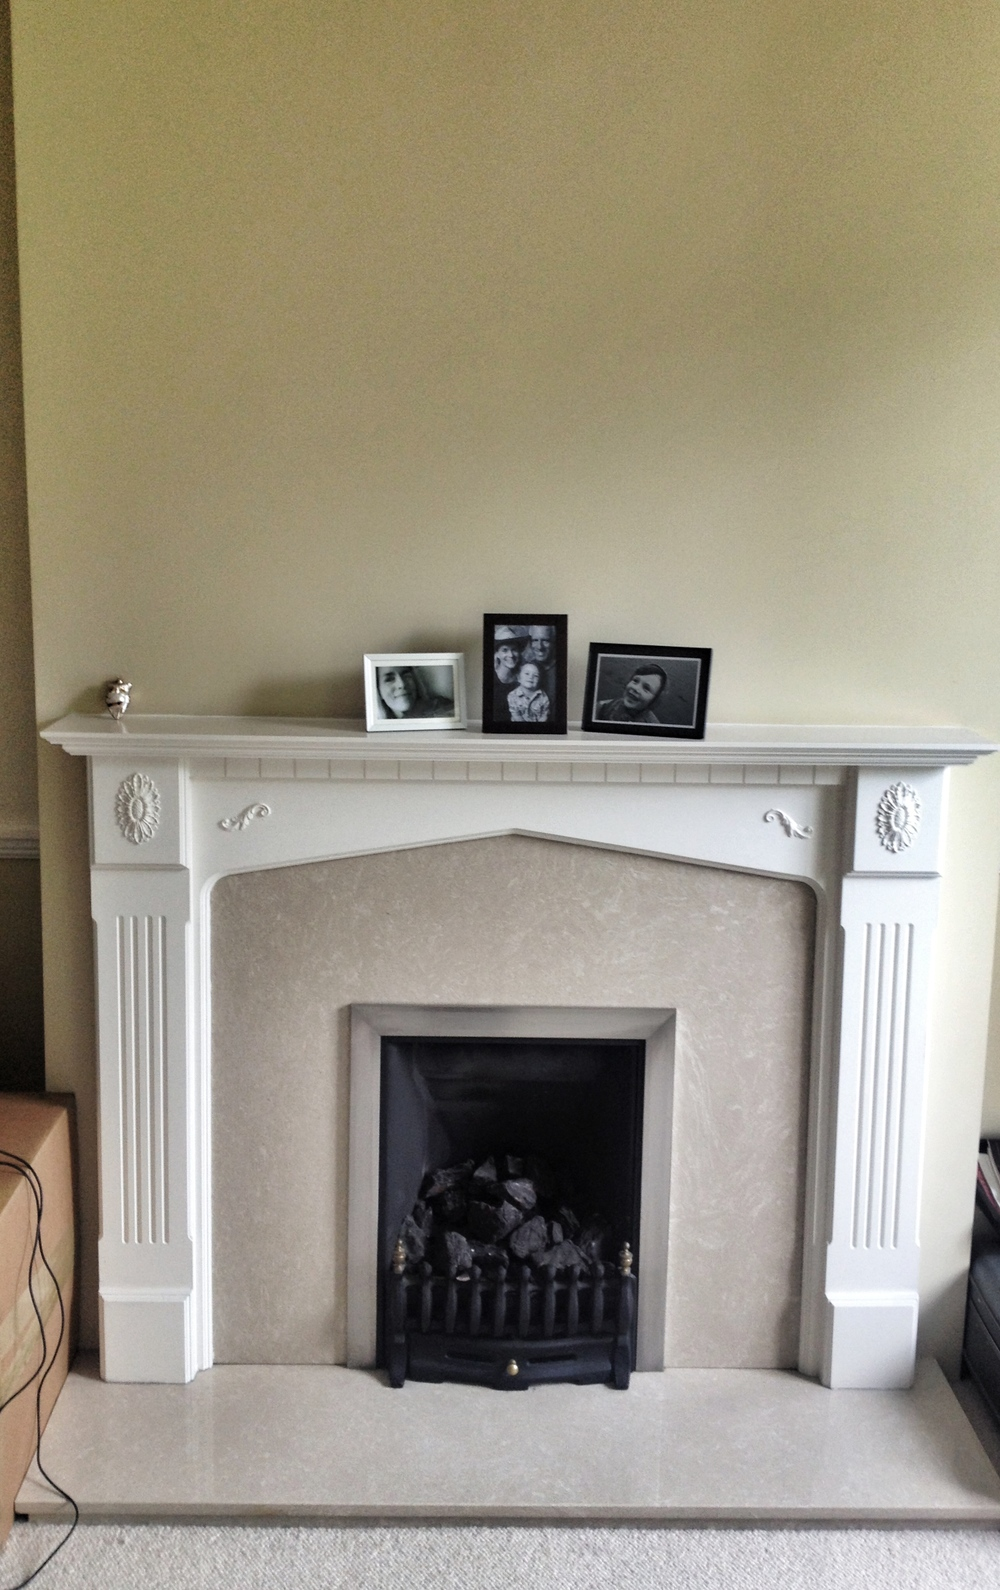 Our Coal Burning Hearth!